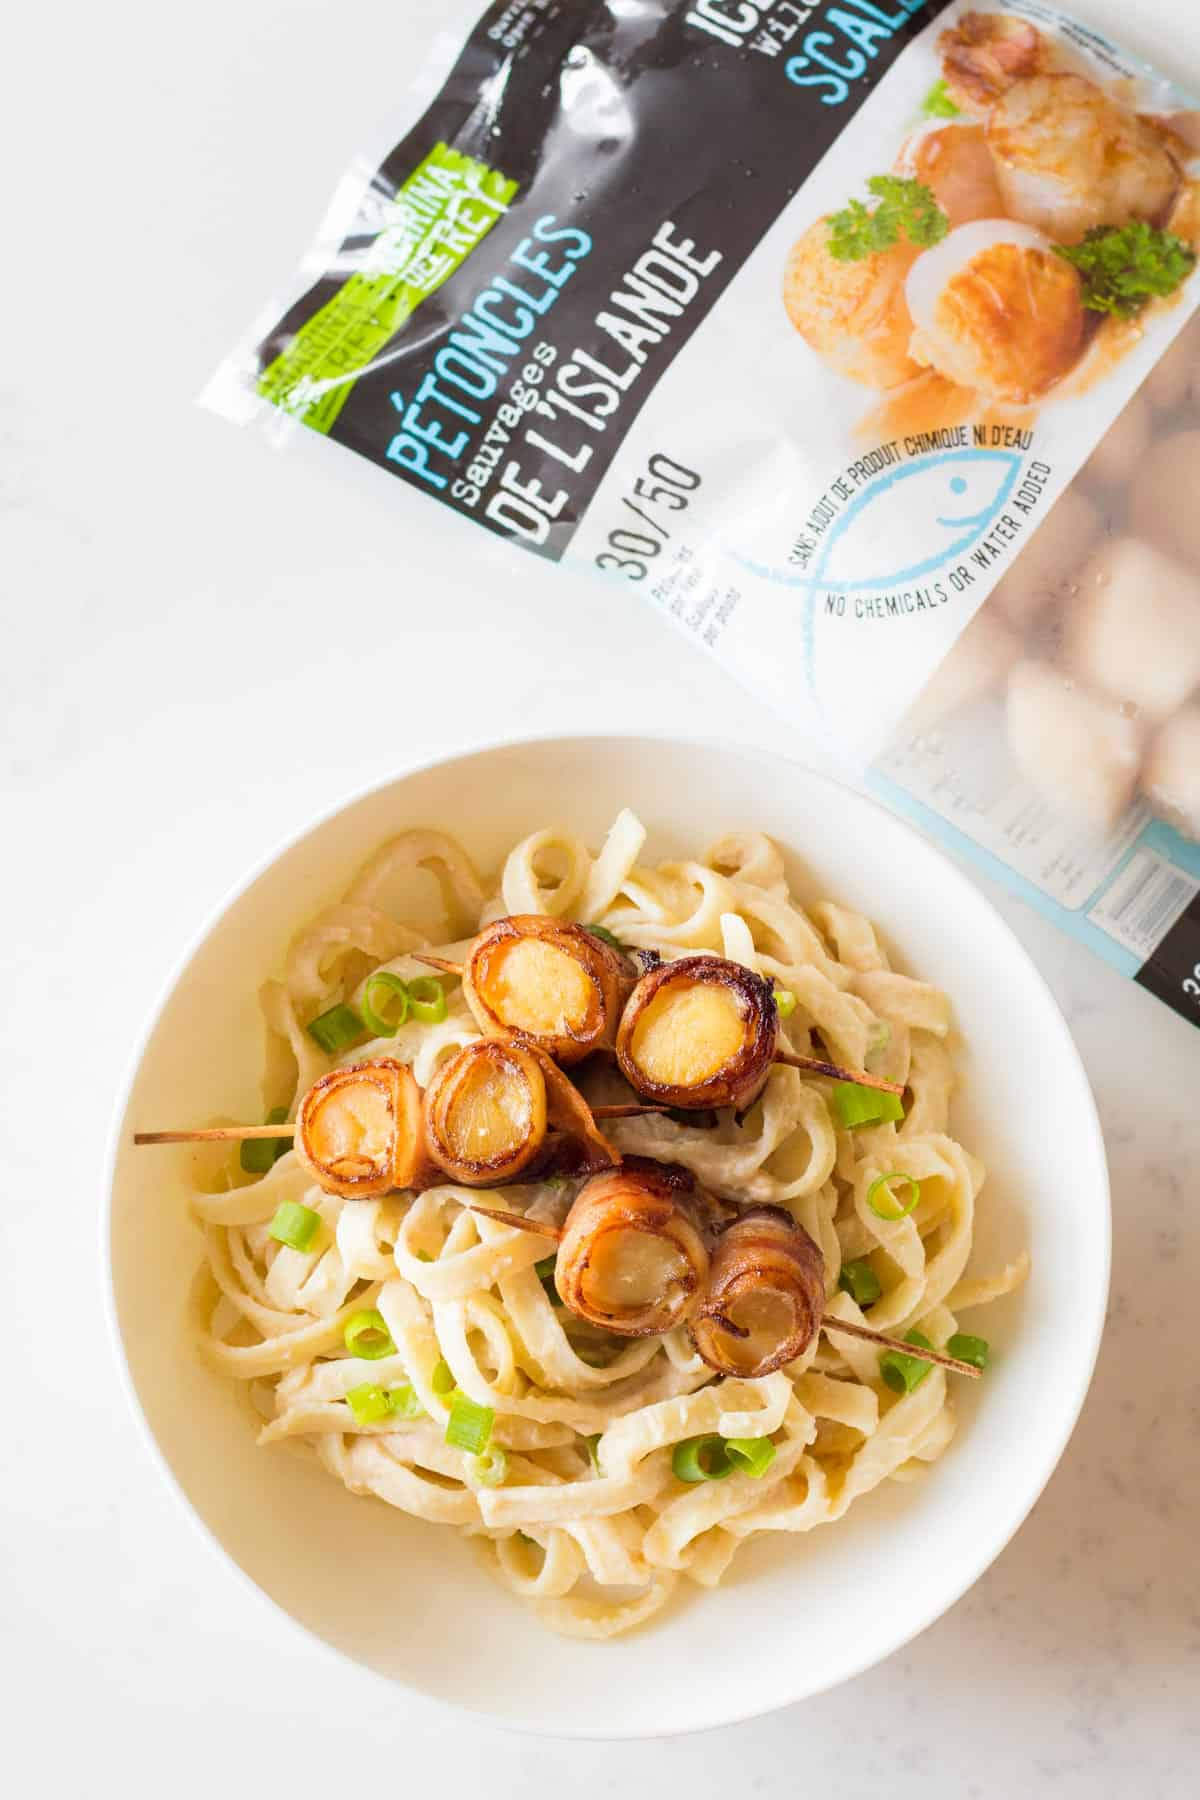 Bacon Scallop Pasta in white bowl, bag of frozen seafood on side